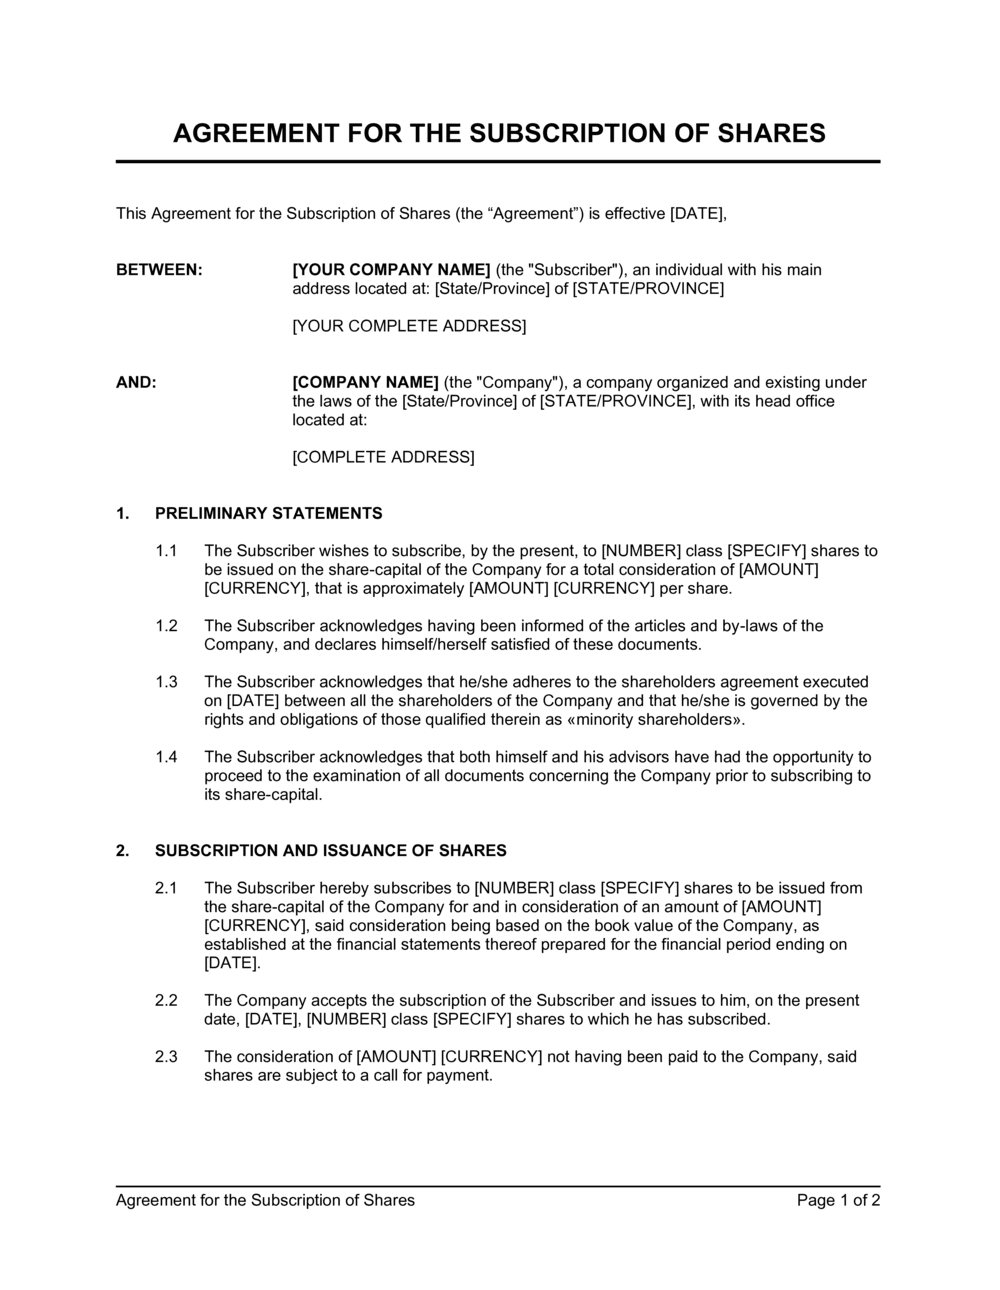 Business-in-a-Box's Agreement for the Subscription of Shares Template